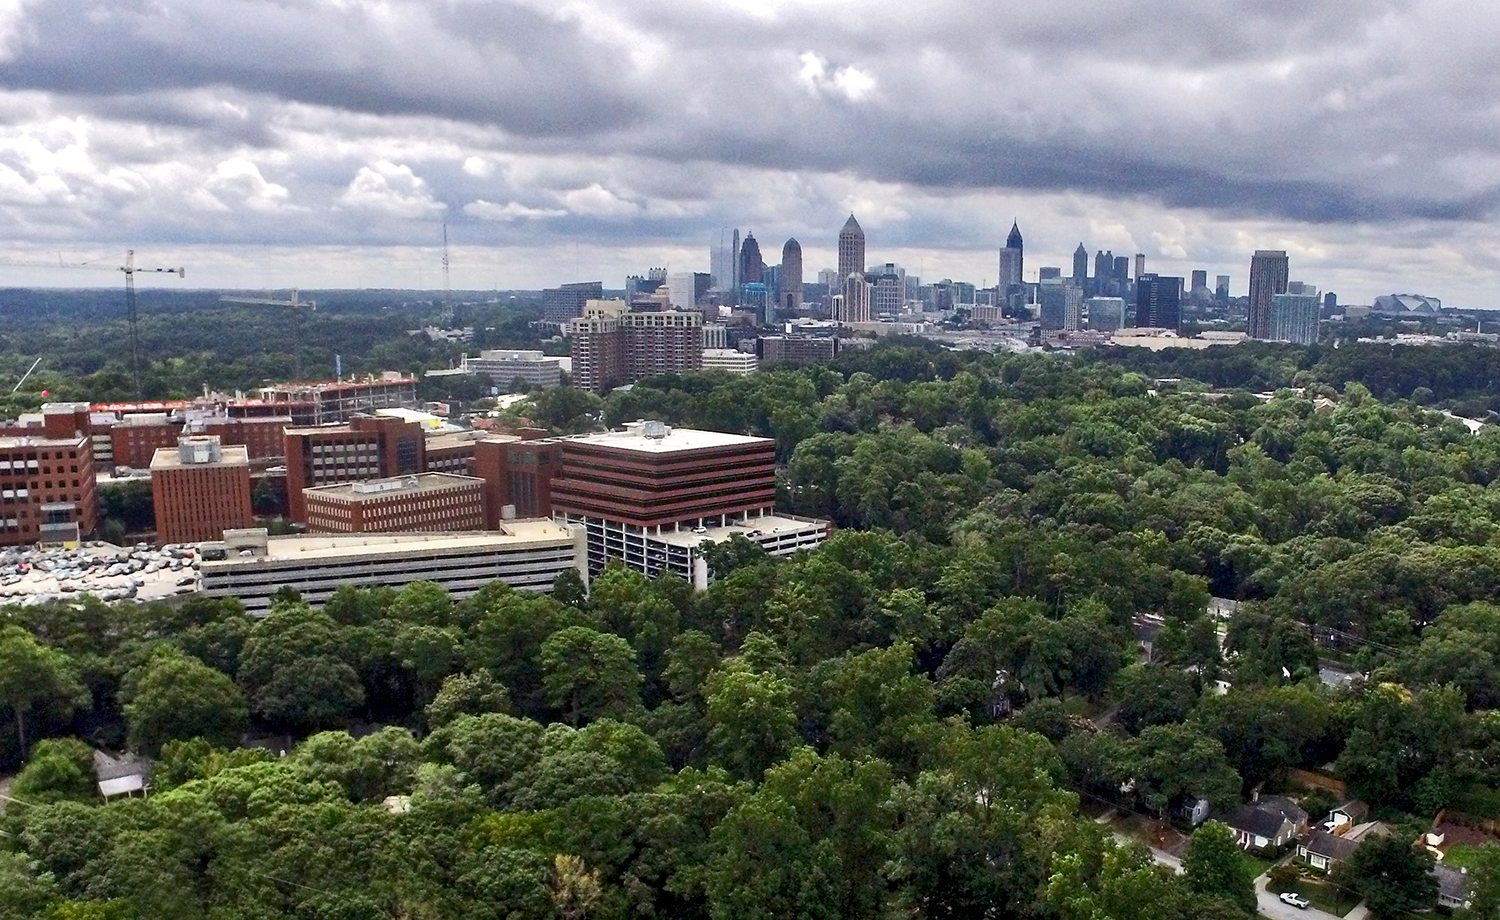 A large swath of trees dominate the foreground with city buildings in the background.